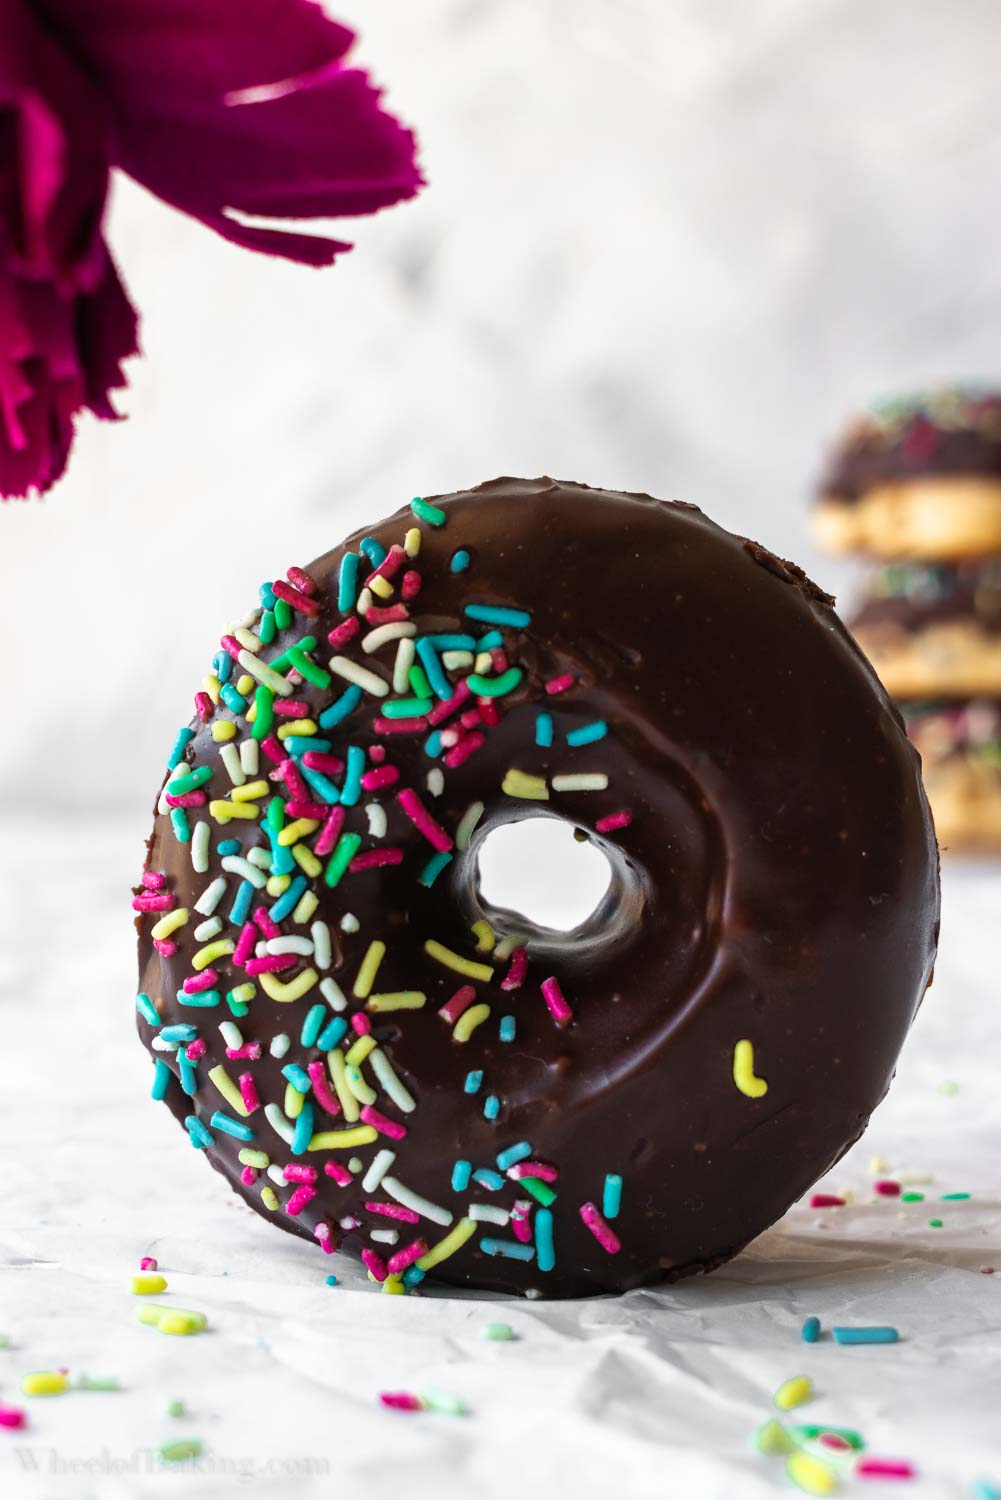 Baked Yeast Donuts with Chocolate Ganache